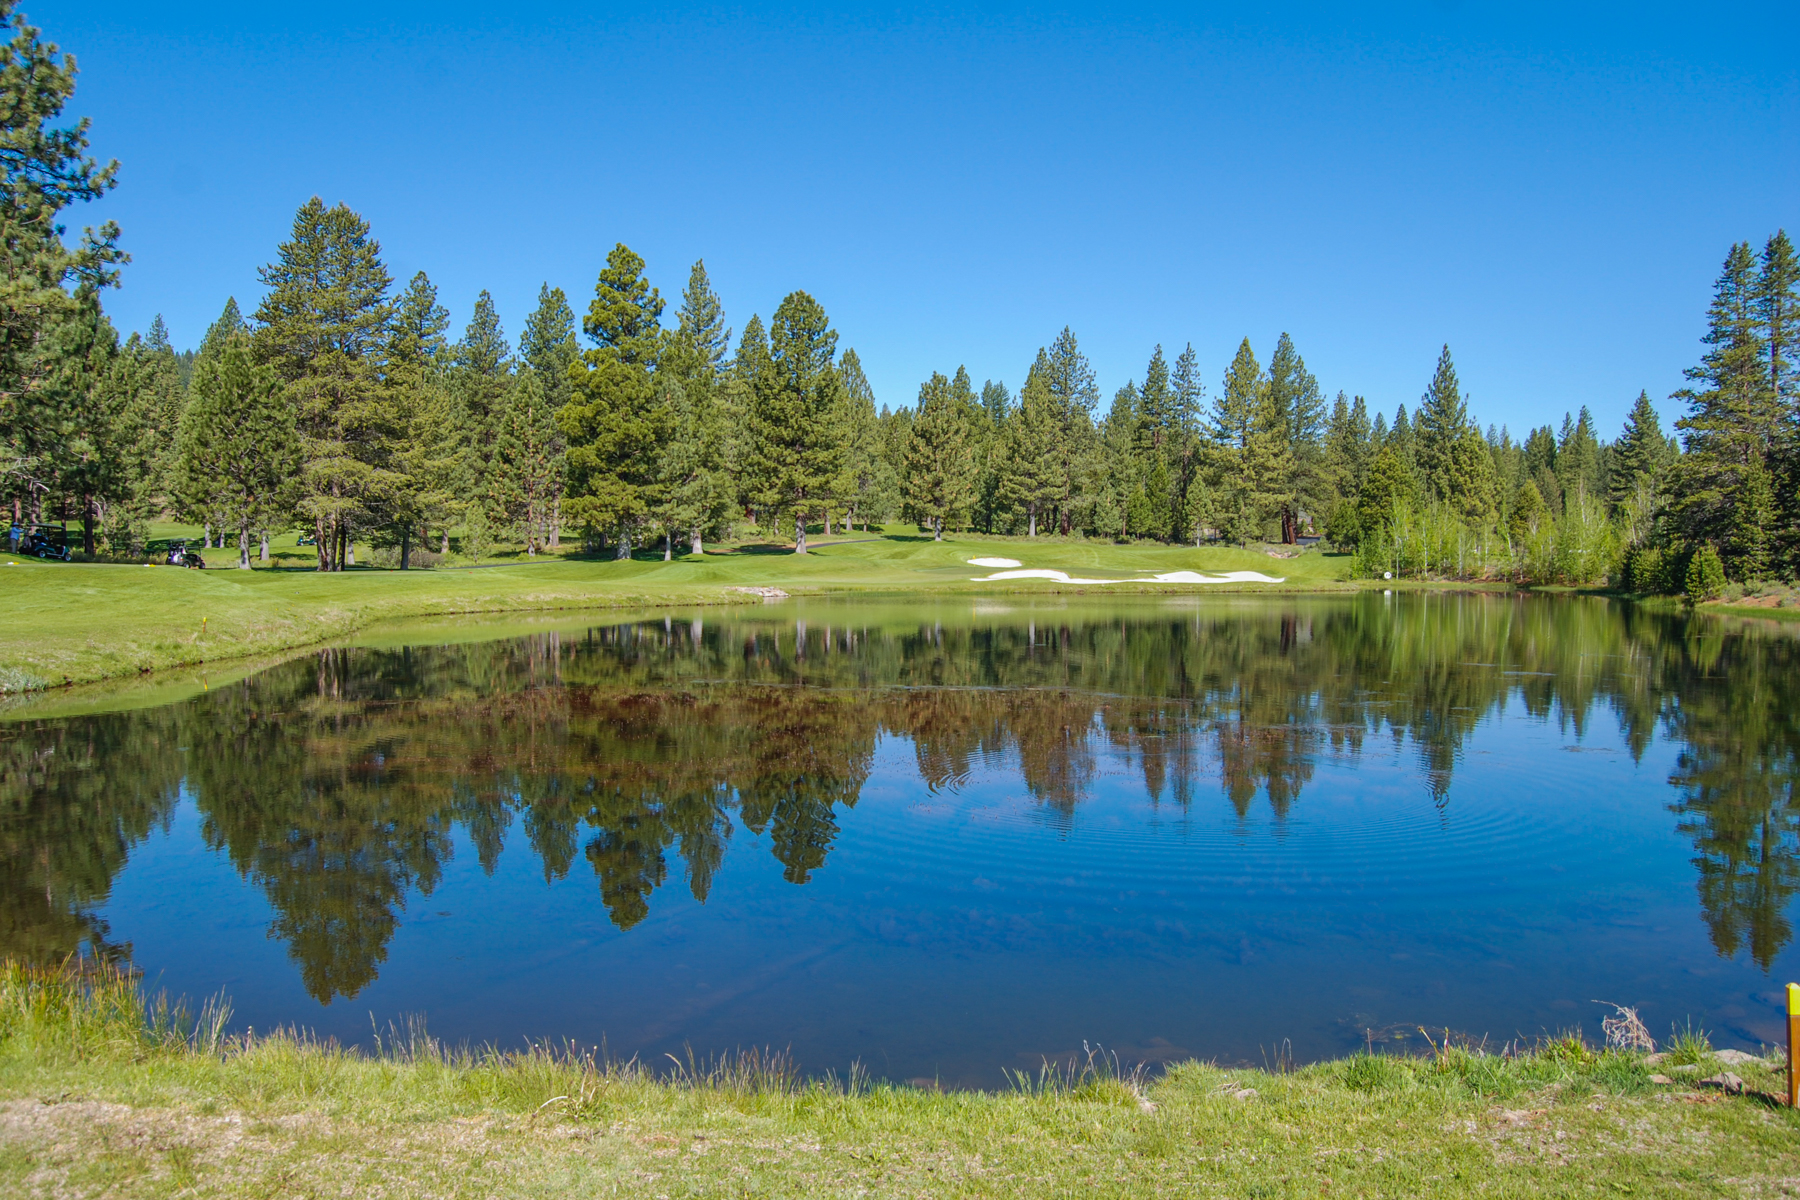 Additional photo for property listing at 646 Joseph Bernard, Truckee, CA 646 Joseph Bernard Truckee, California 96161 United States